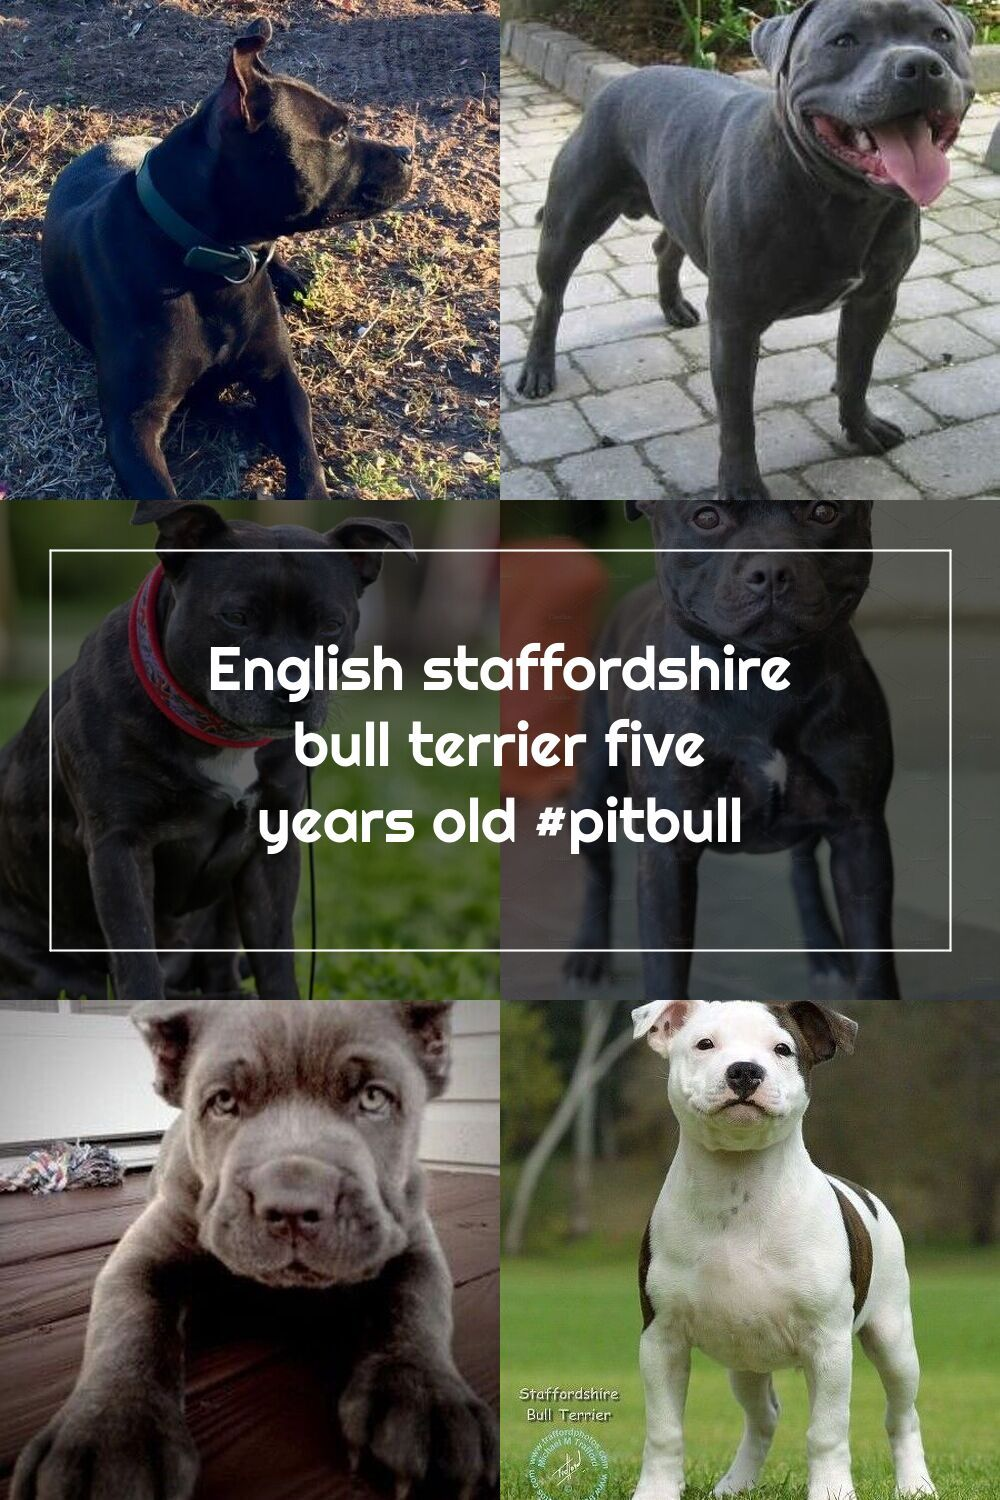 English Staffordshire Bull Terrier Five Years Old Pitbull In 2020 English Staffordshire Bull Terrier Staffordshire Bull Terrier Bull Terrier